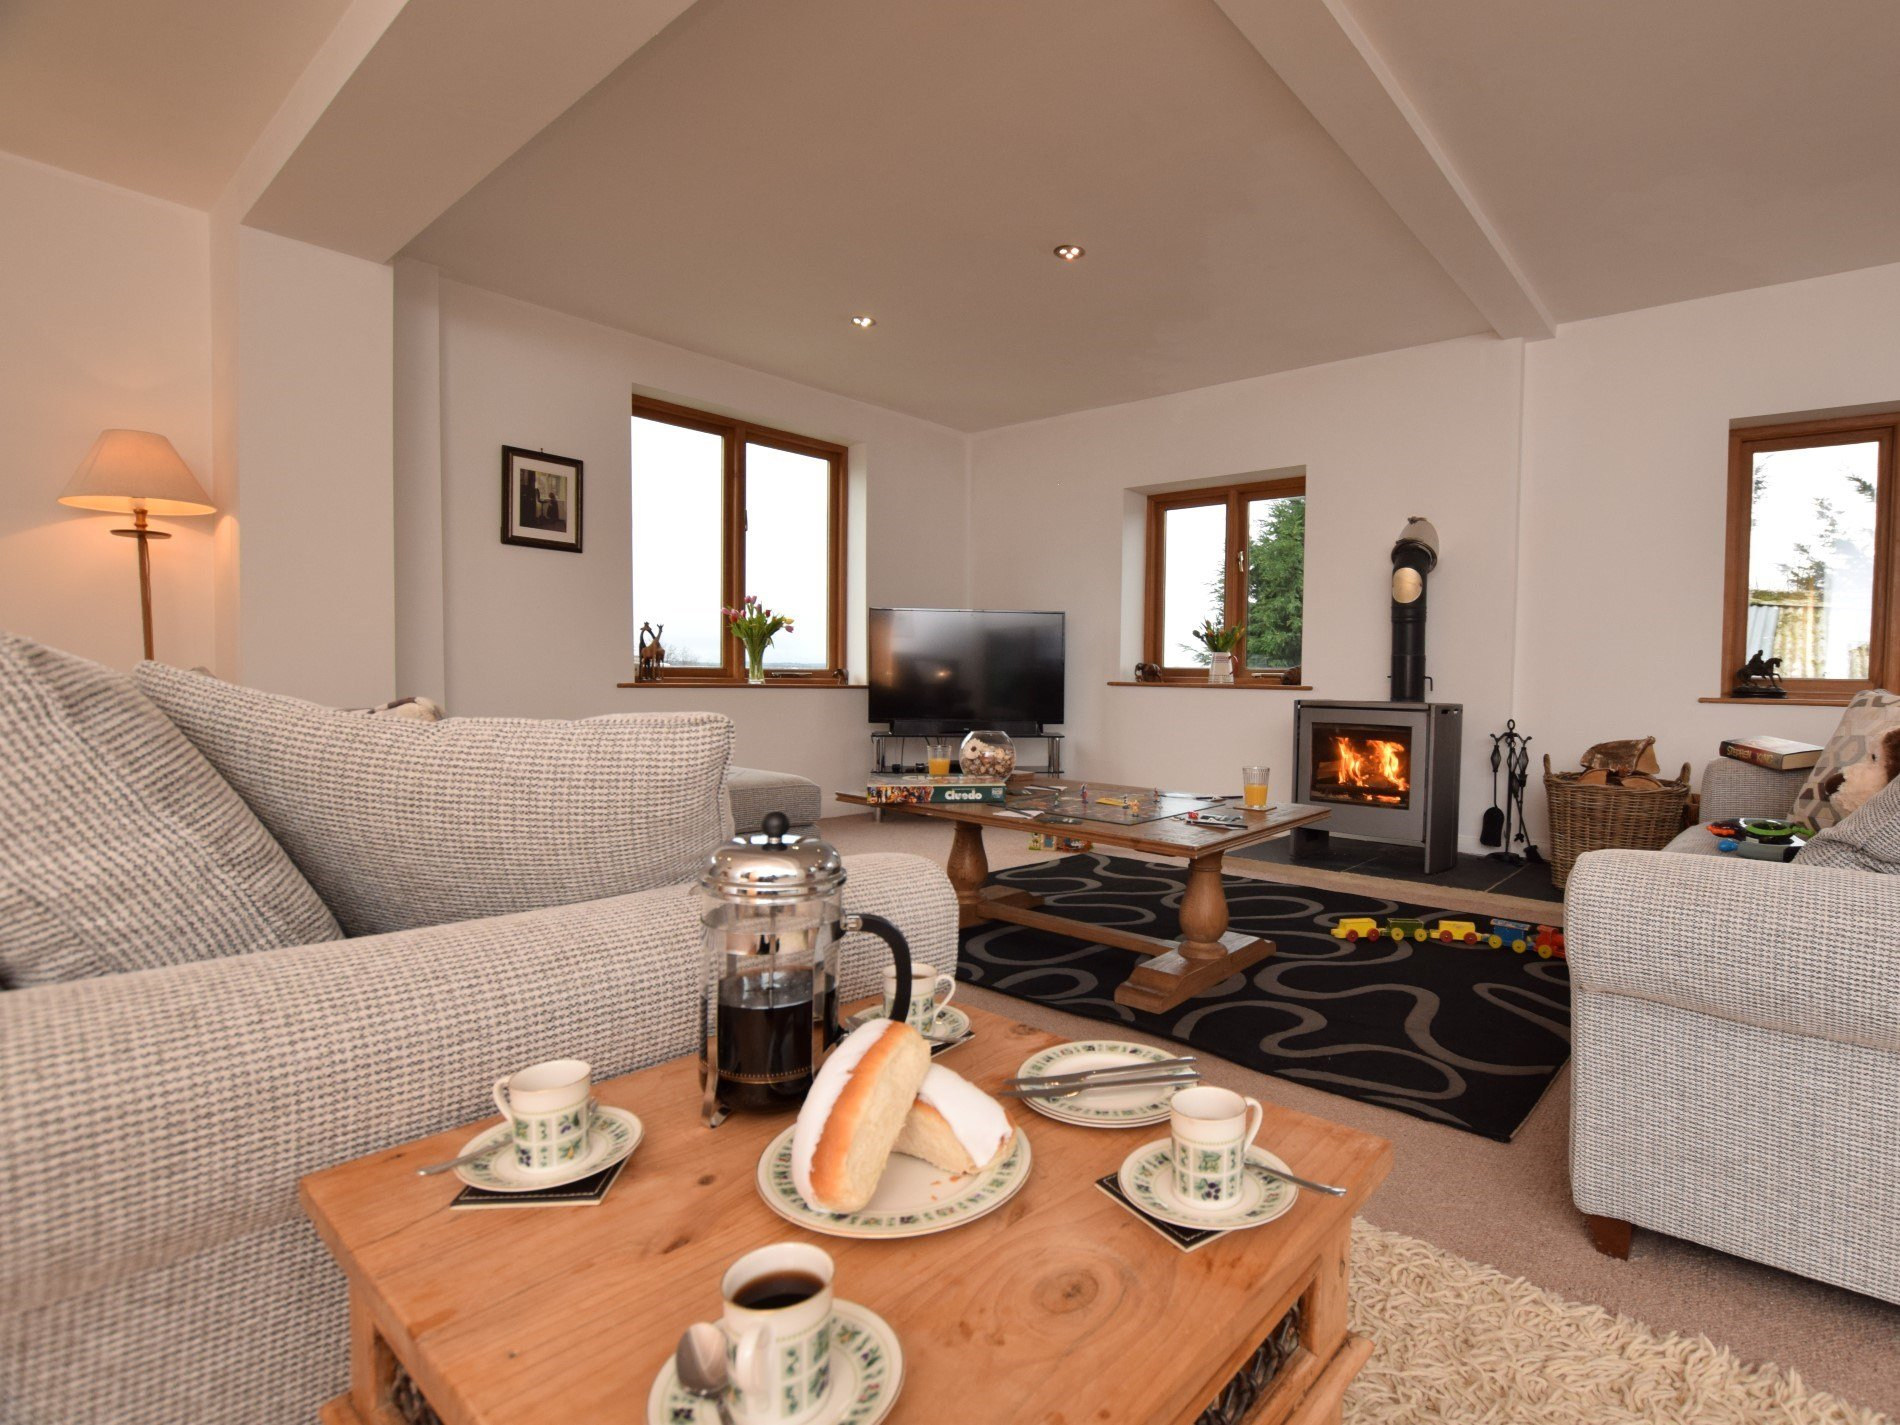 5 Bedroom Cottage in Wetherby, Yorkshire Dales